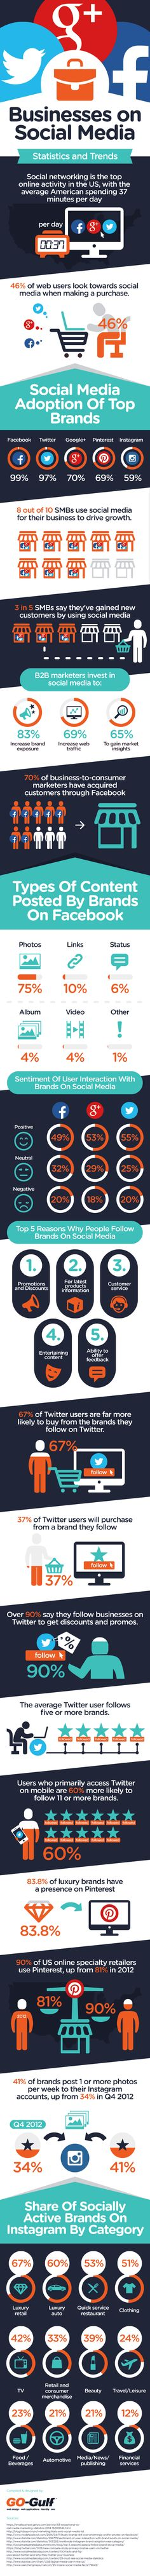 Facebook, Google+, Twitter, Pinterest Instagram -Social Media Marketing Trends 2014 - #infographic #SocialMedia #business